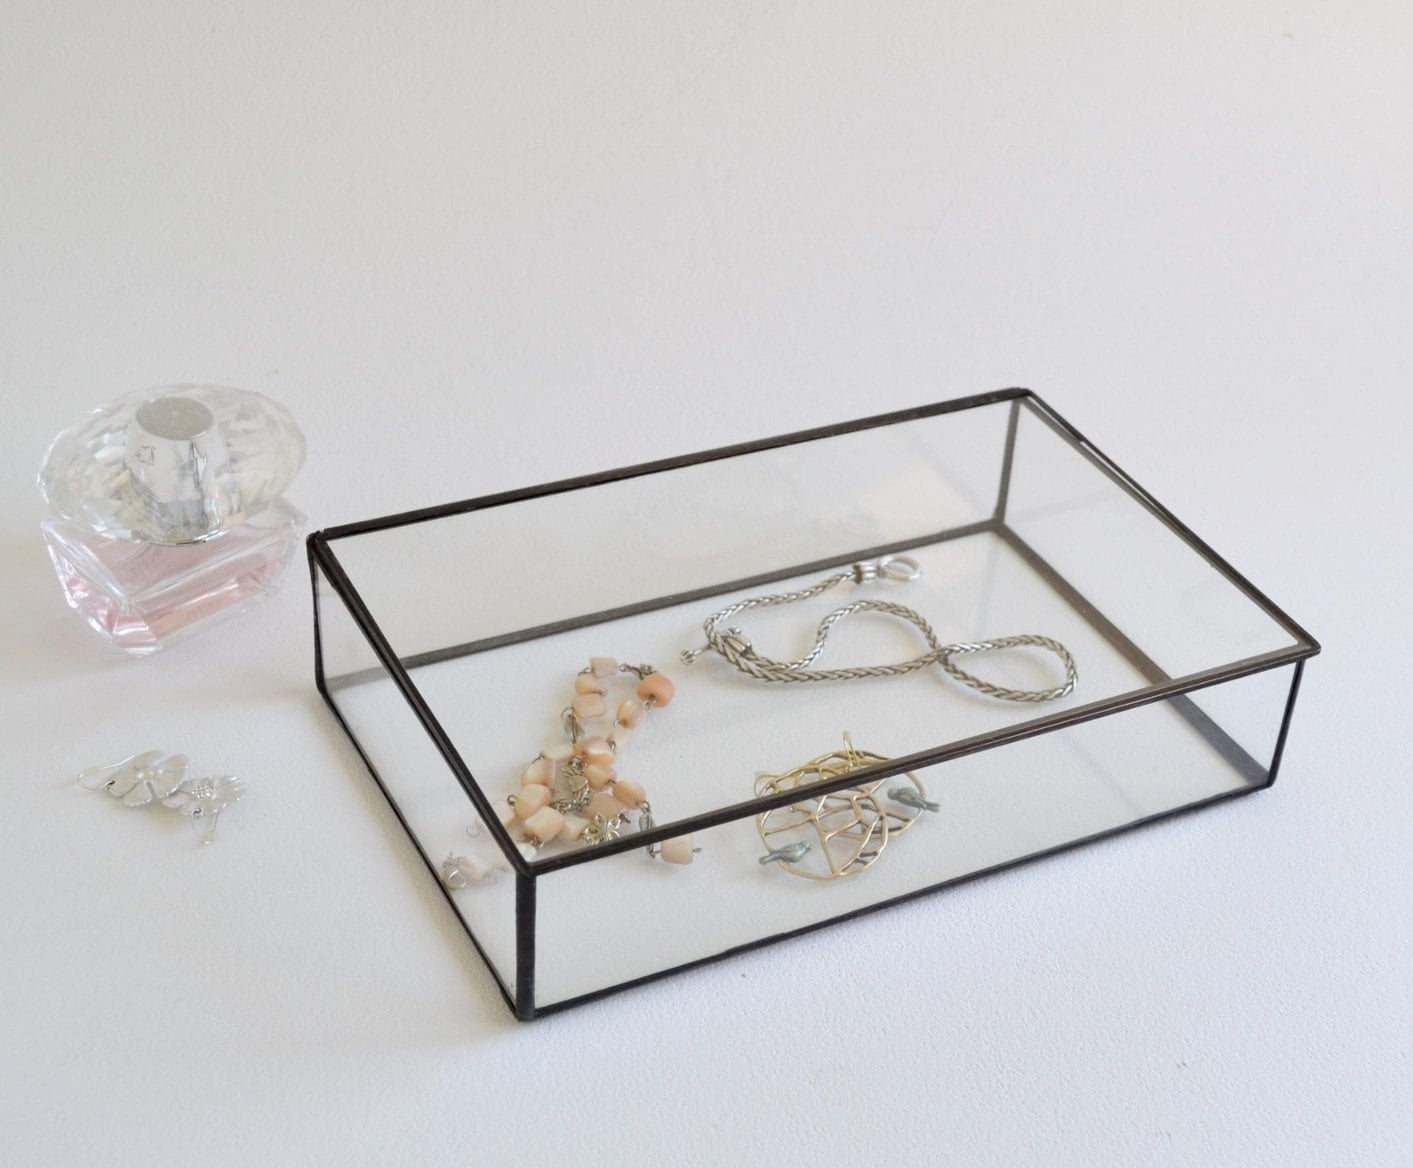 With our display cases and shadow box frames you'll find an assortment of colors and styles to capture your memories for years to come.